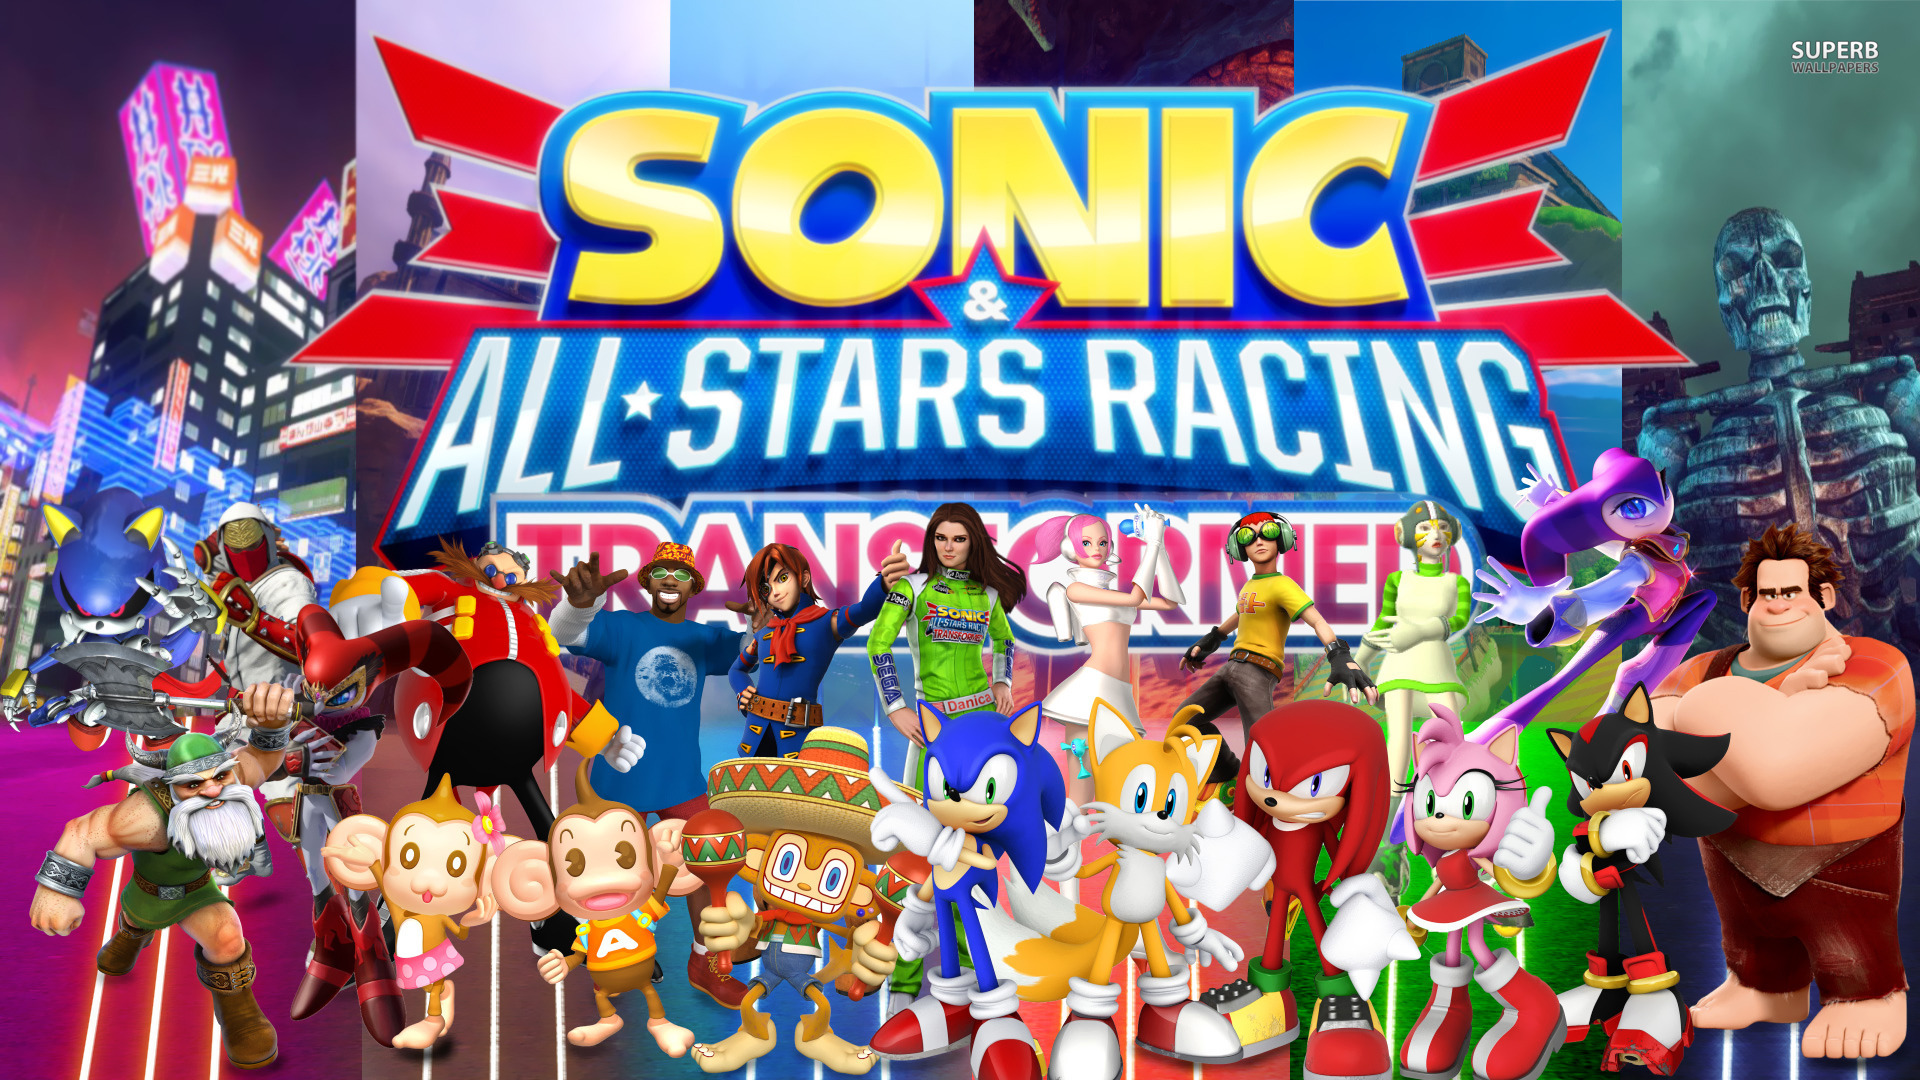 sonic-all-stars-racing-transformed-17545-1920x1080